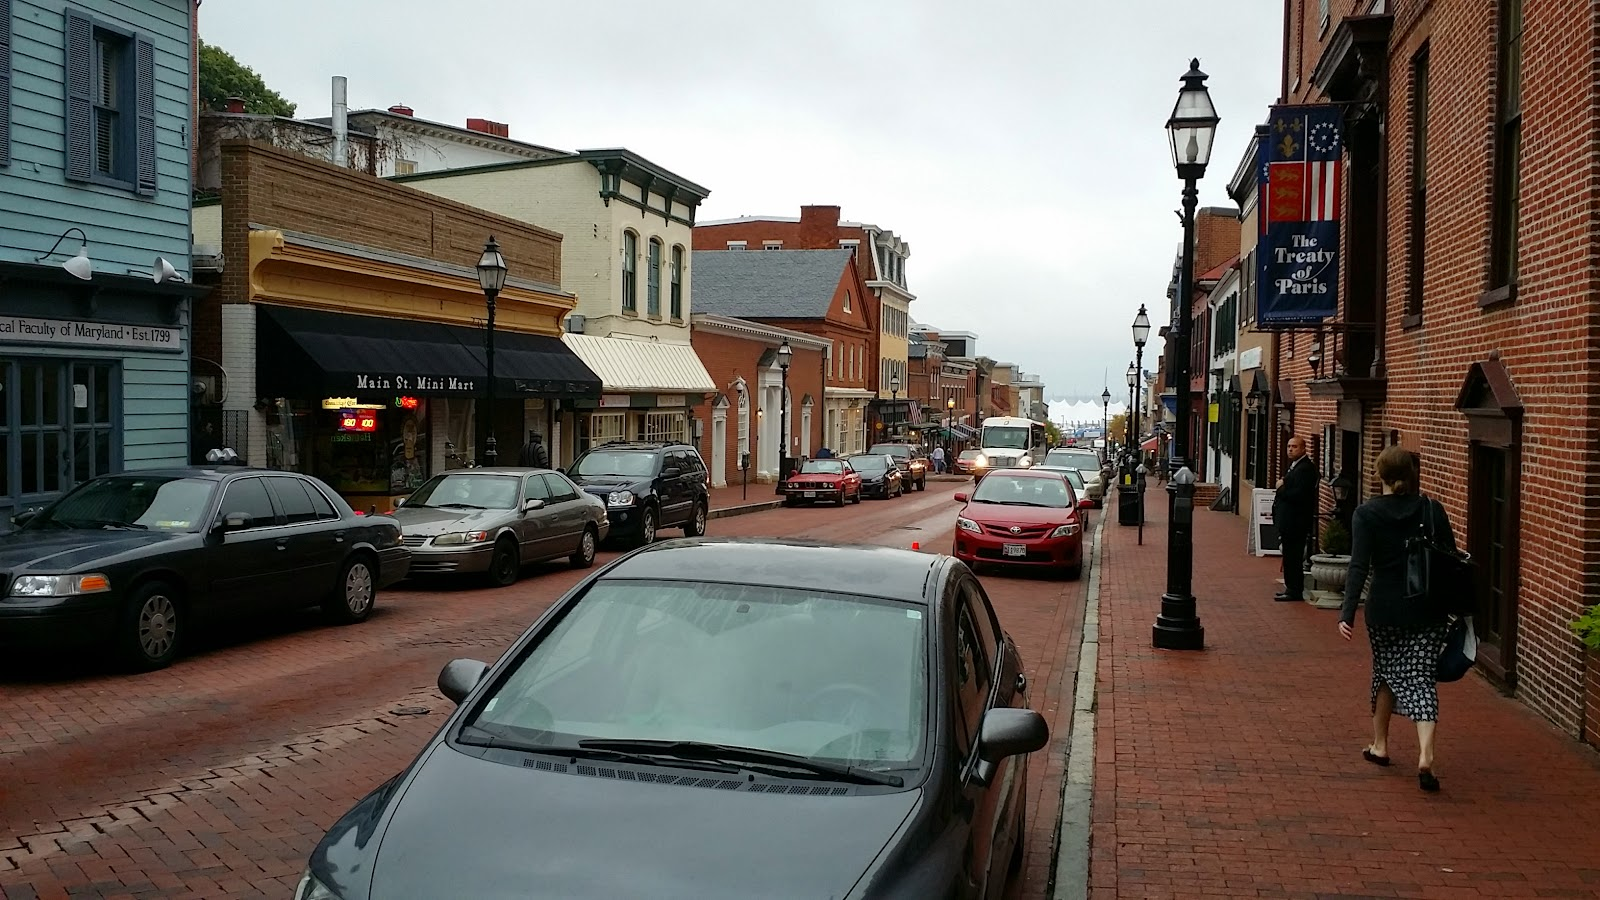 City Streets of Annapolis